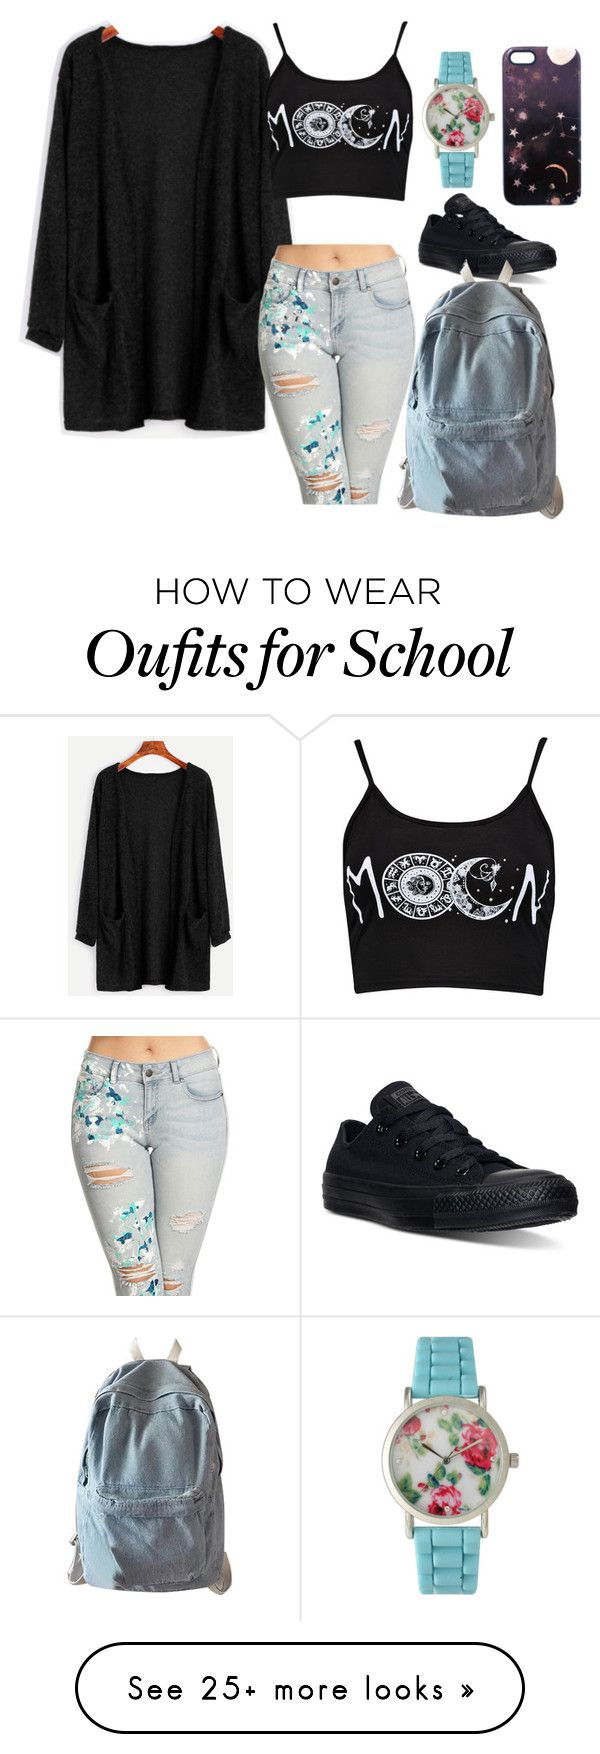 """Summer Outfit #1"" by luvlybunny on Polyvore featuring Boohoo, Converse, WithChic, Nikki Strange, Olivia Pratt, Summer, outfit and Flowers"